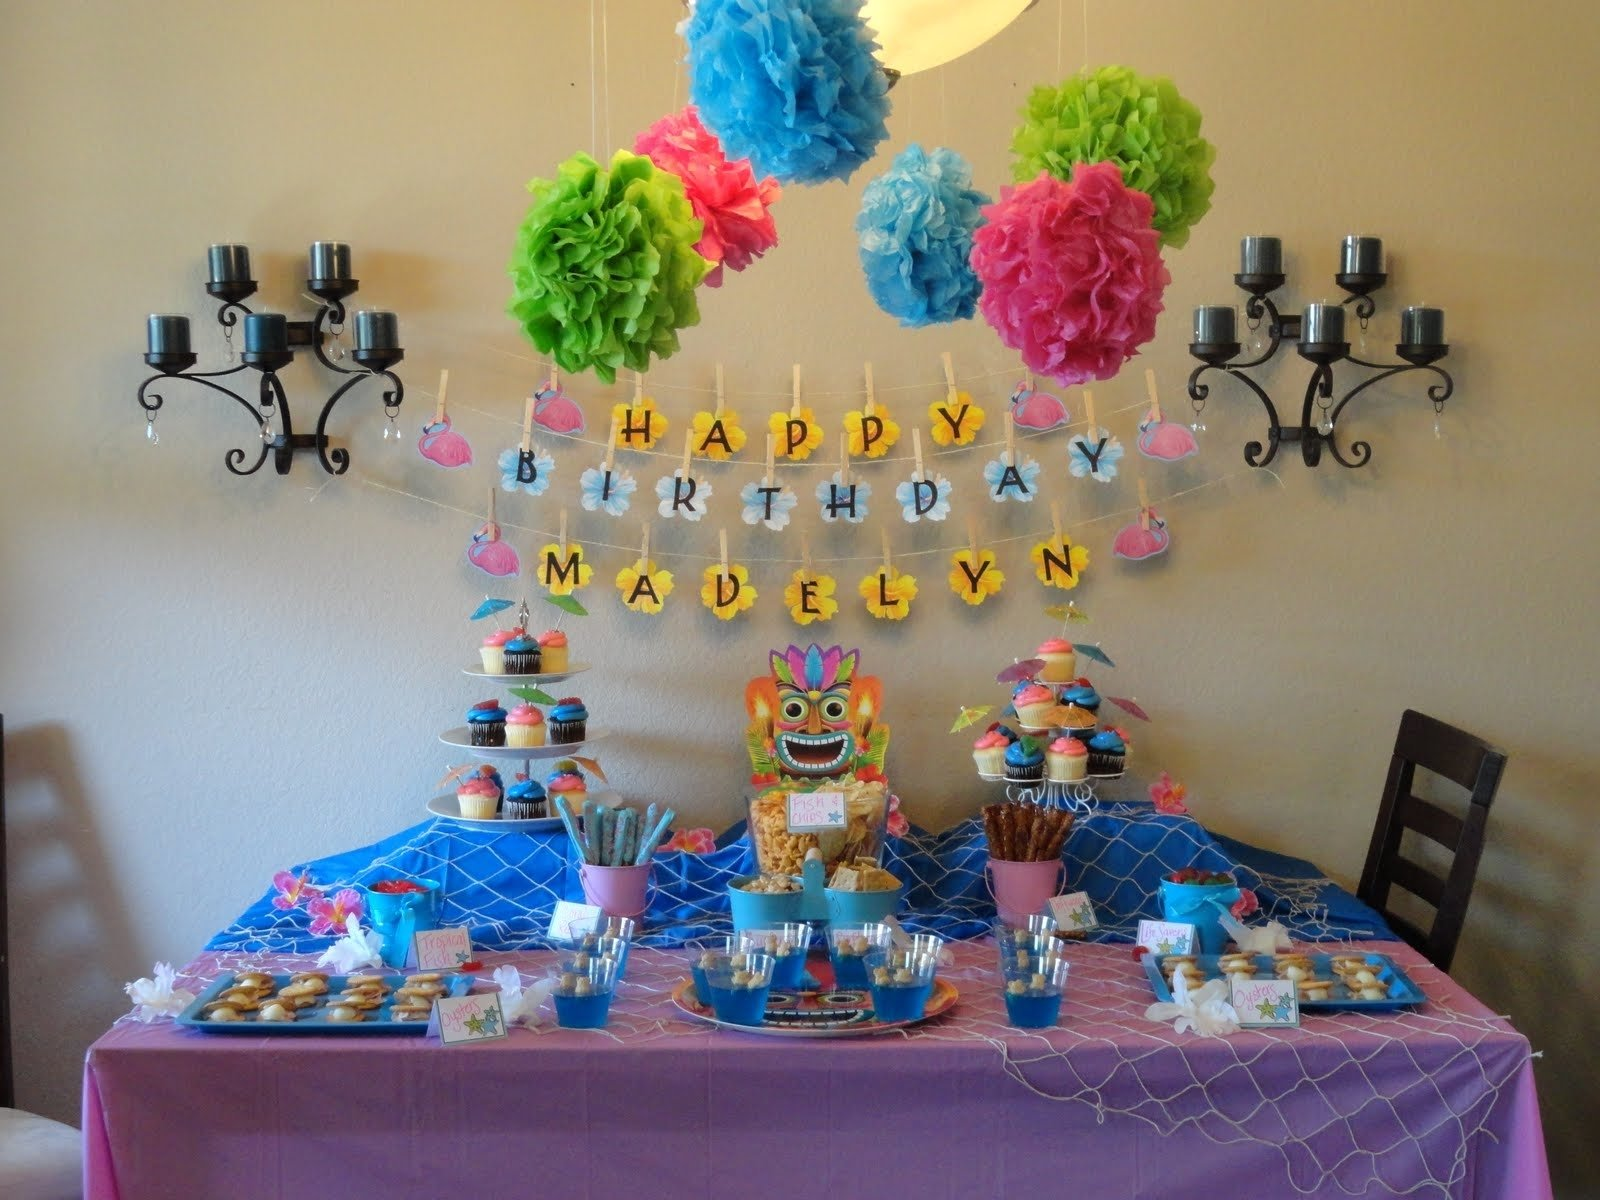 10 Best Birthday Ideas For A 2 Year Old Boy themes birthday 2 and 4 year old birthday party ideas as well as 16